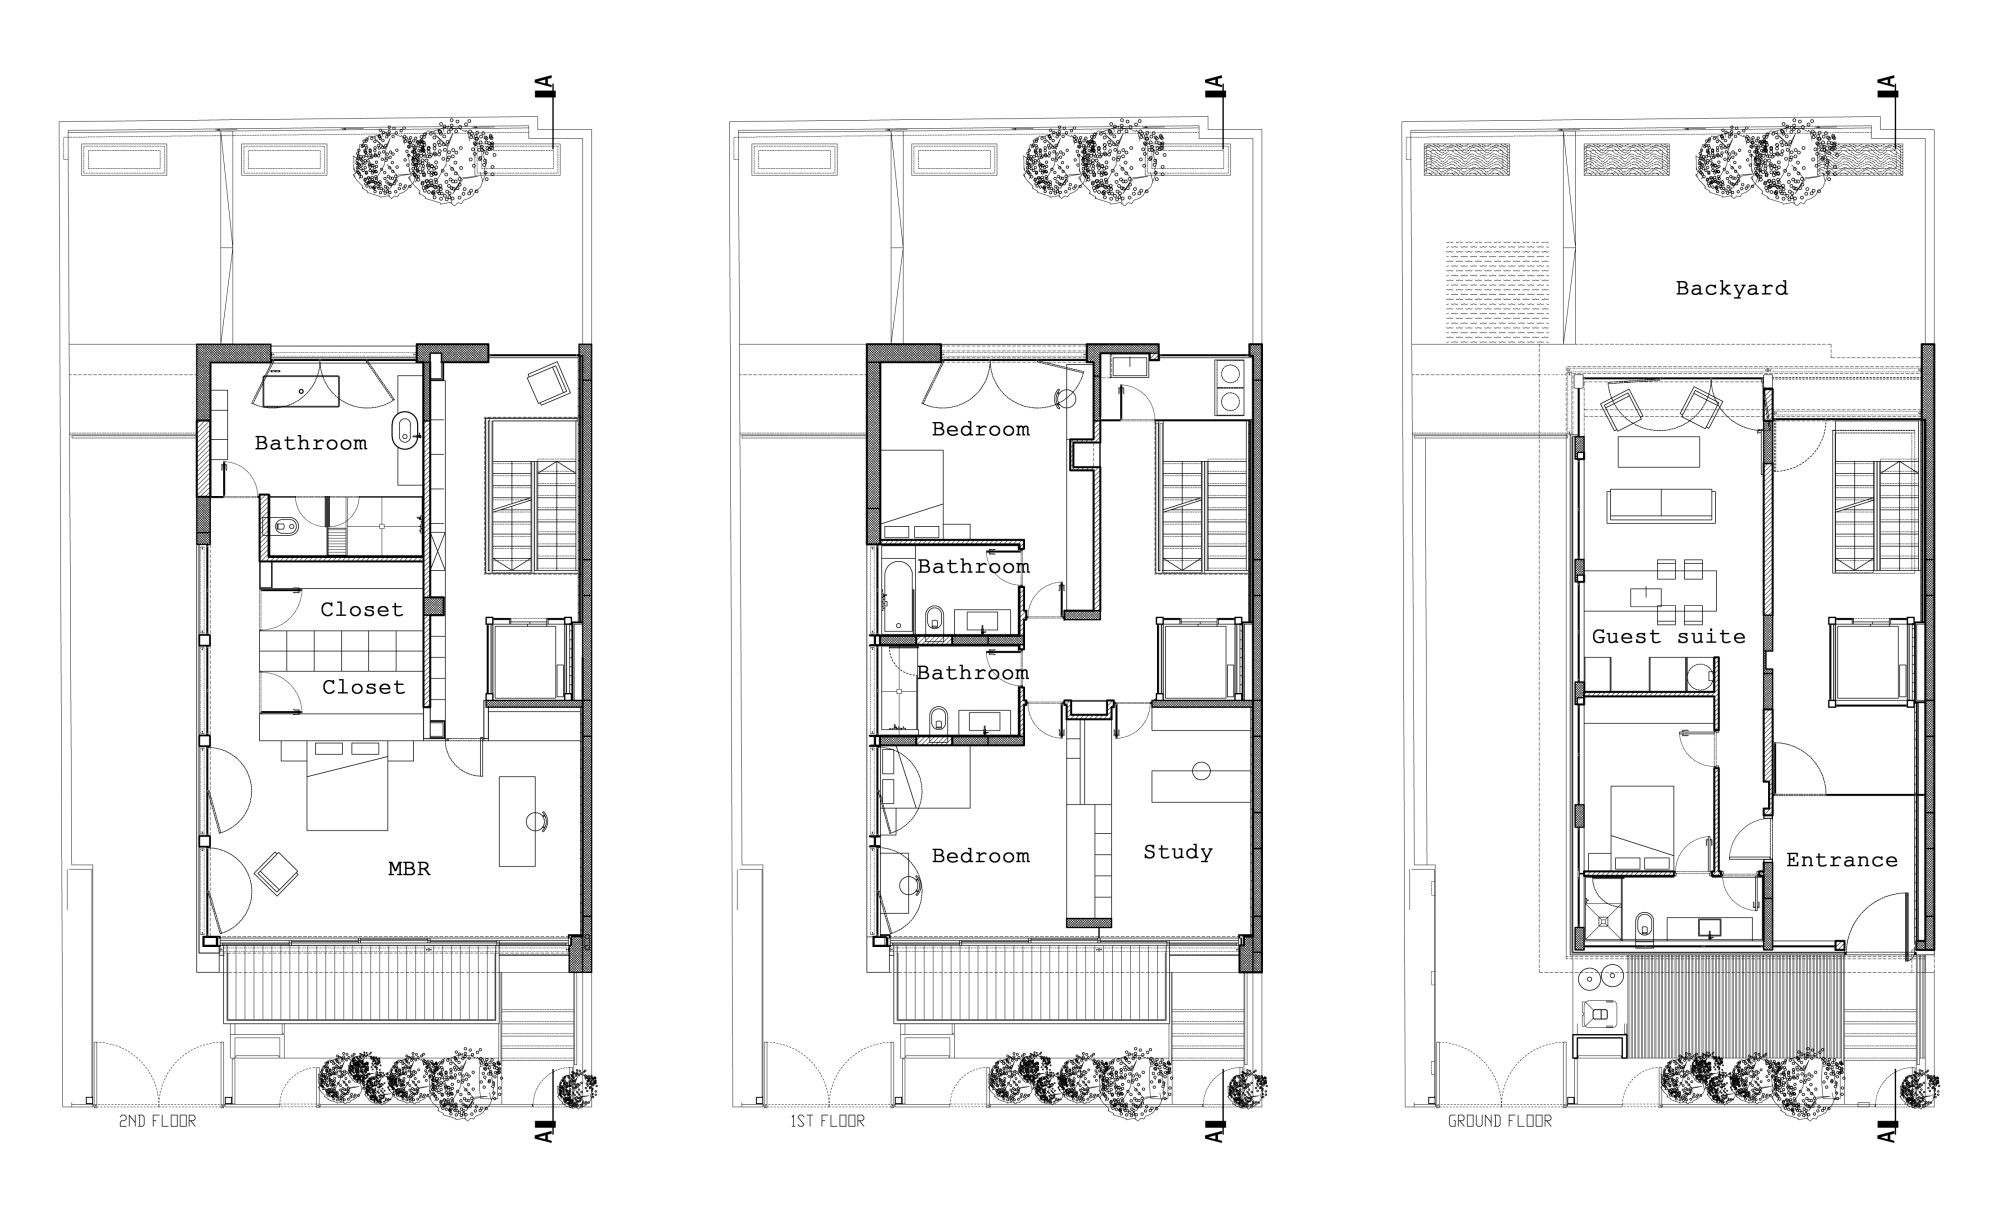 Townhouse plans modern house for Townhouse plans